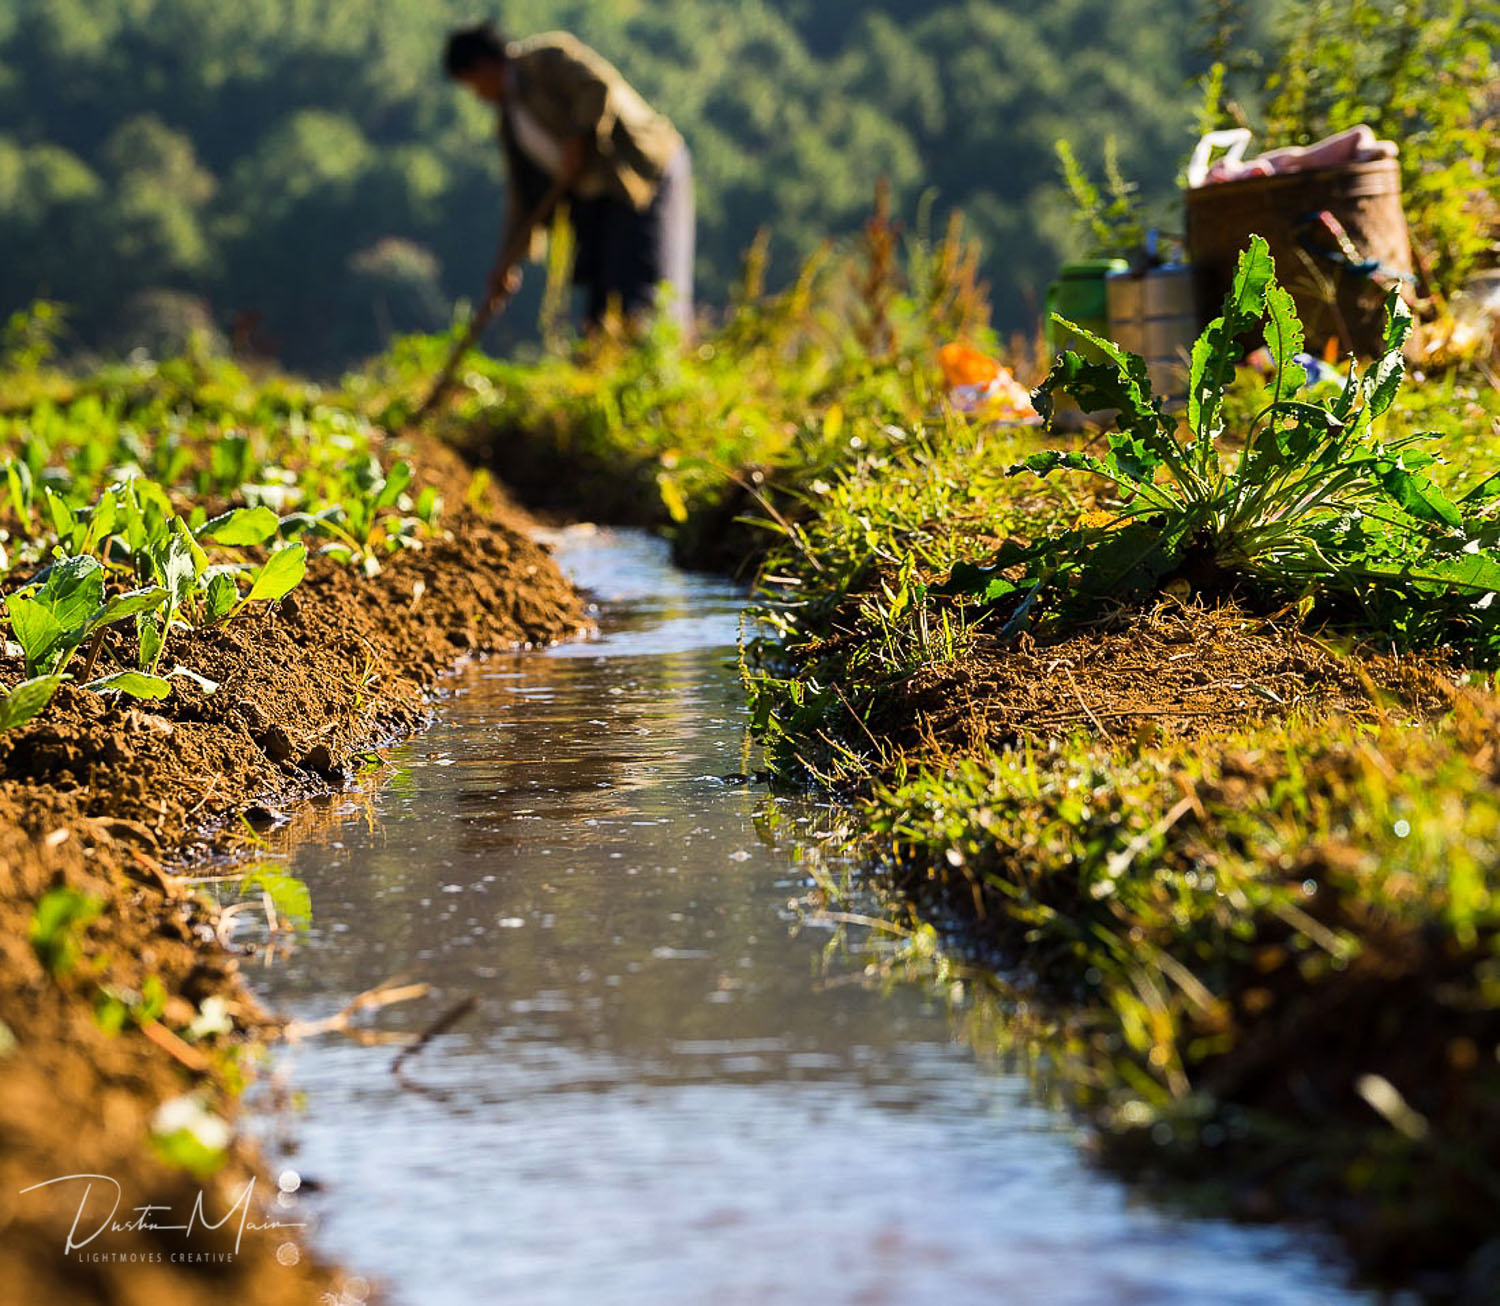 Water management with he help of local NGO's helps keep farmers in Shan State with valuable crops.  © Dustin Main 2017